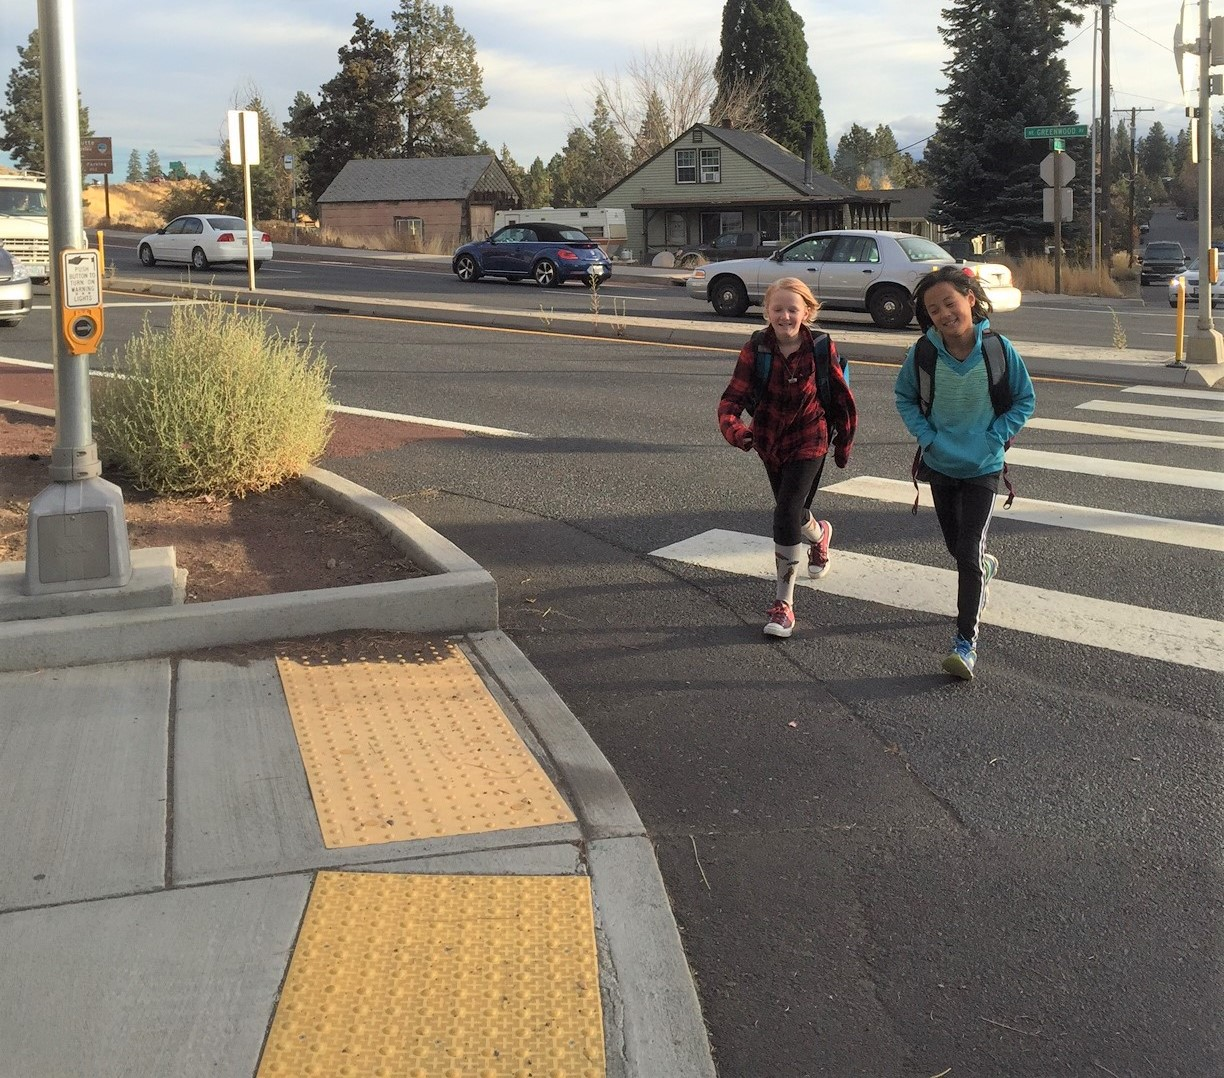 Children crossing in crosswalk